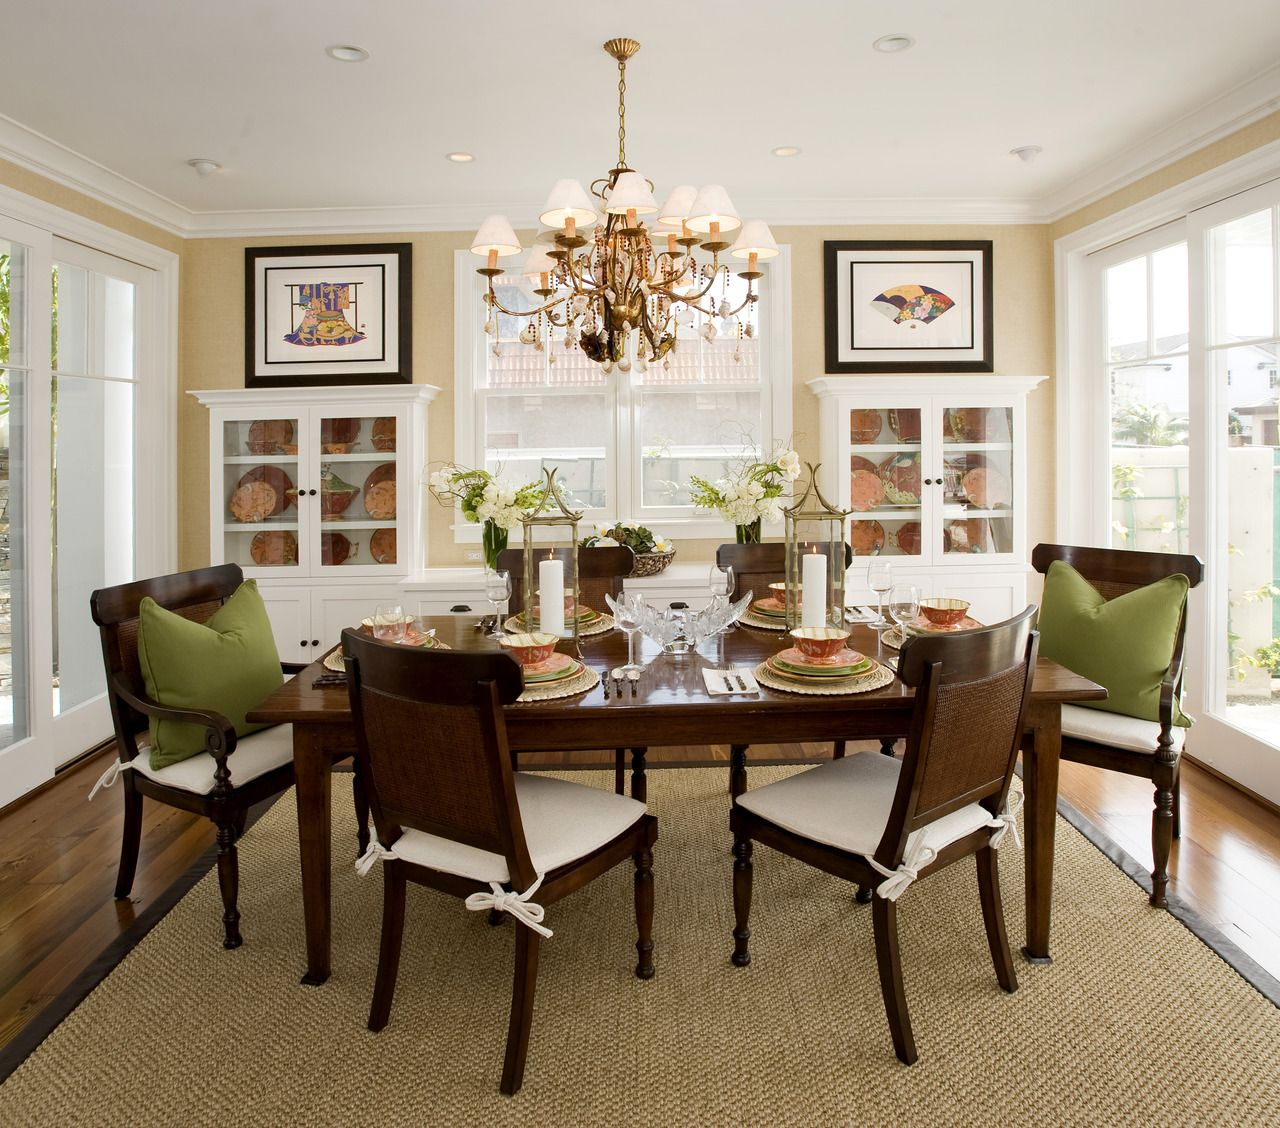 Beautiful Casual Dining Room: Stunning Dining Room With A A Soft Color Palette And A